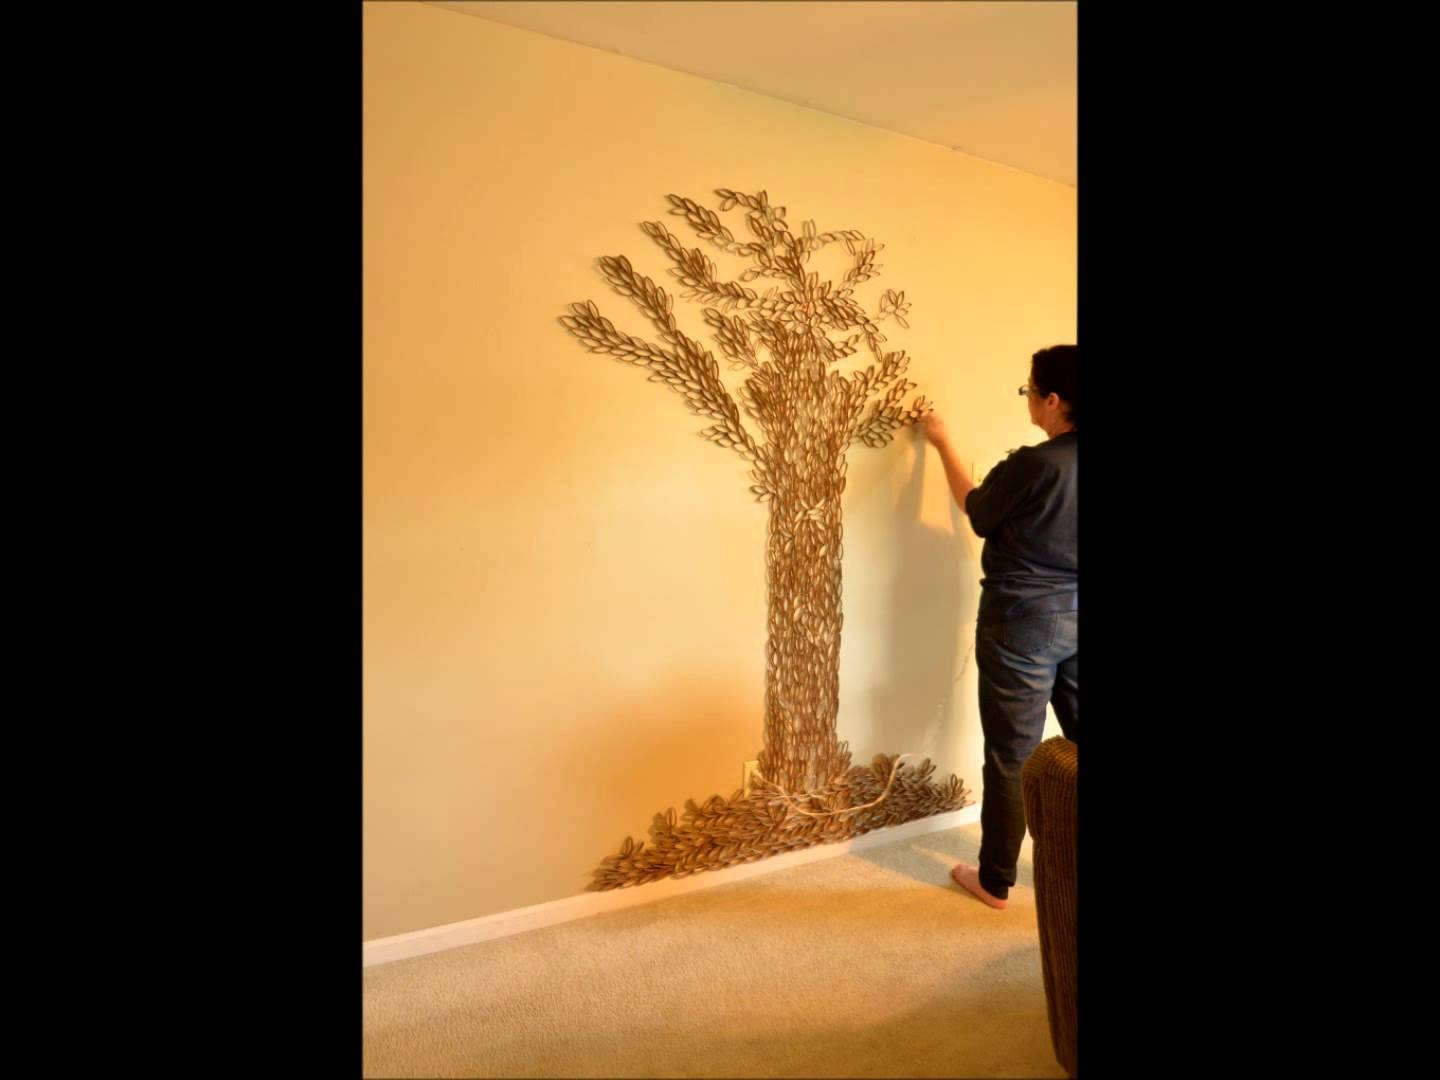 Tree Of Life Wall Art – 7Ft Paper Roll Sculpture In 1 Minute Pertaining To Most Recently Released Tree Wall Art Sculpture (View 14 of 20)